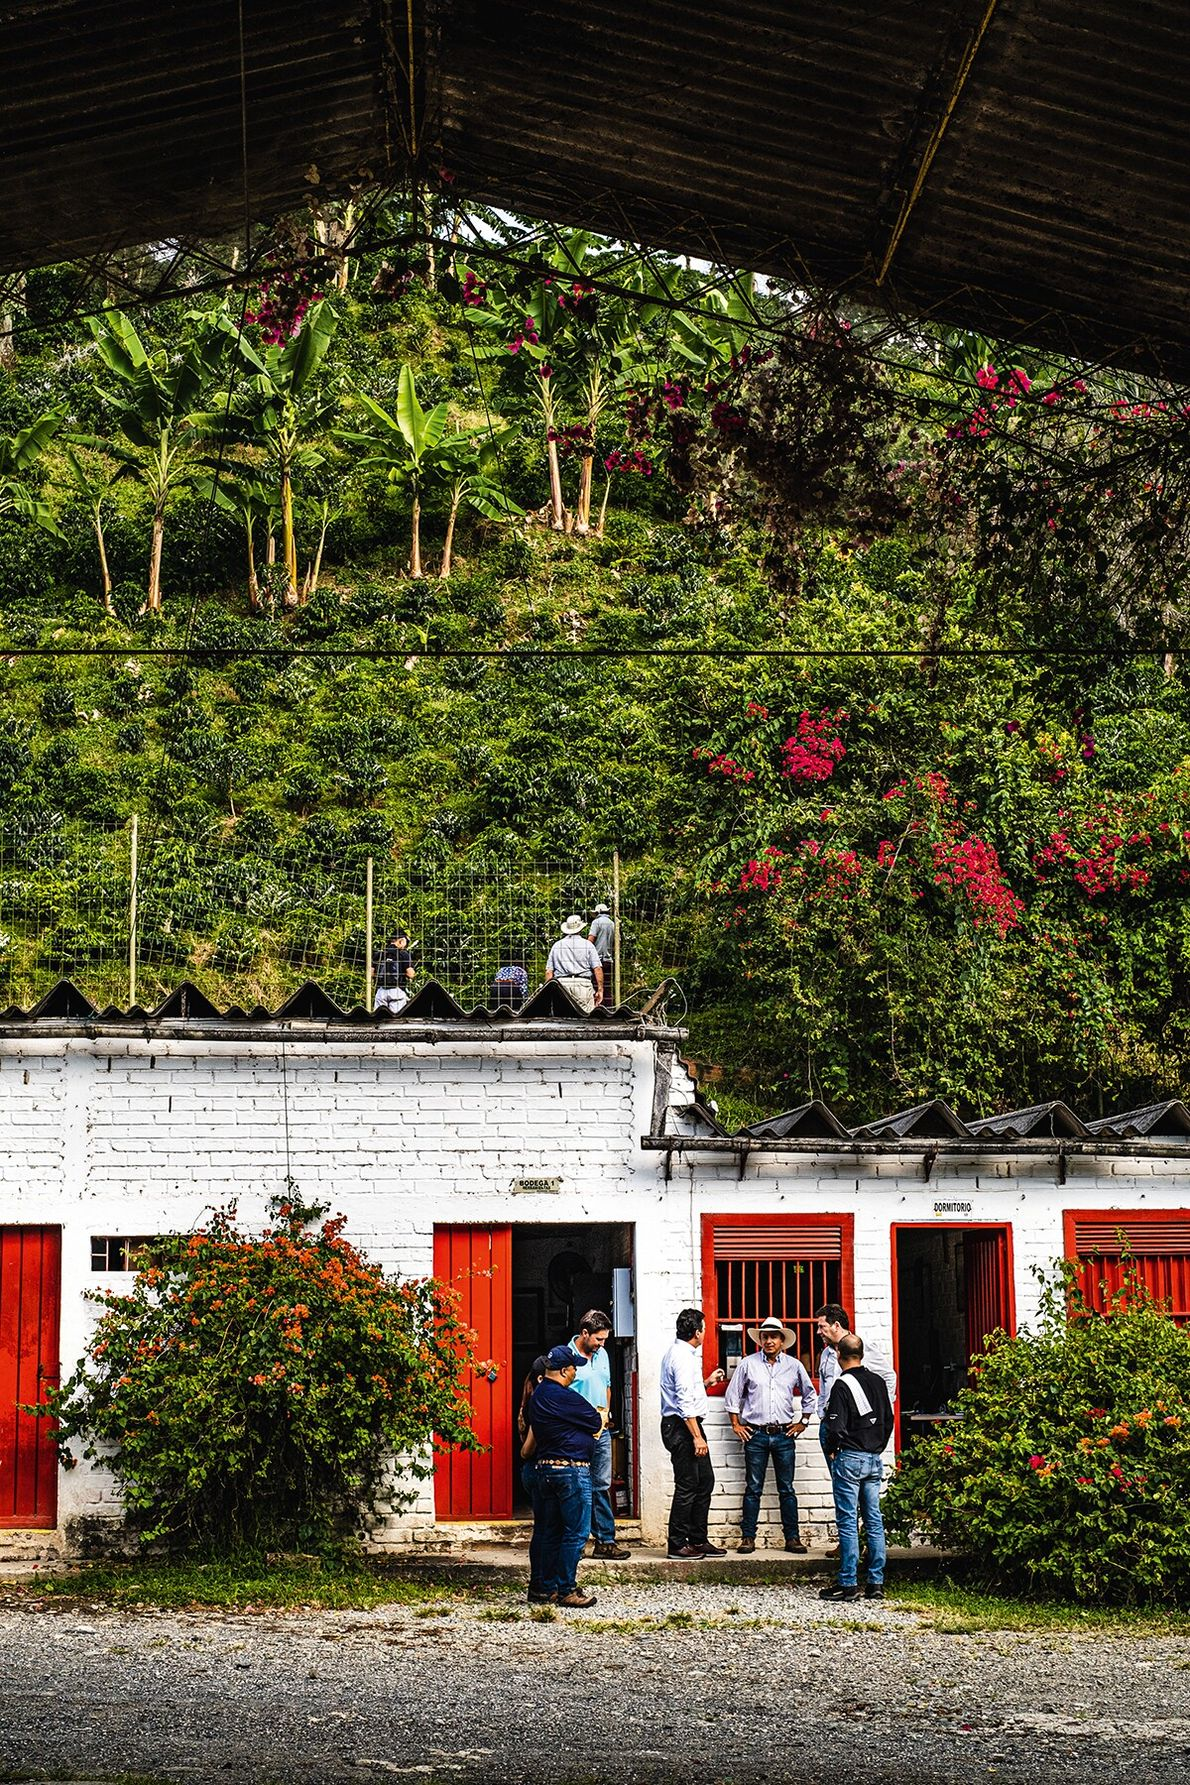 Many plantations welcome visitors, who come to learn about the growing process.